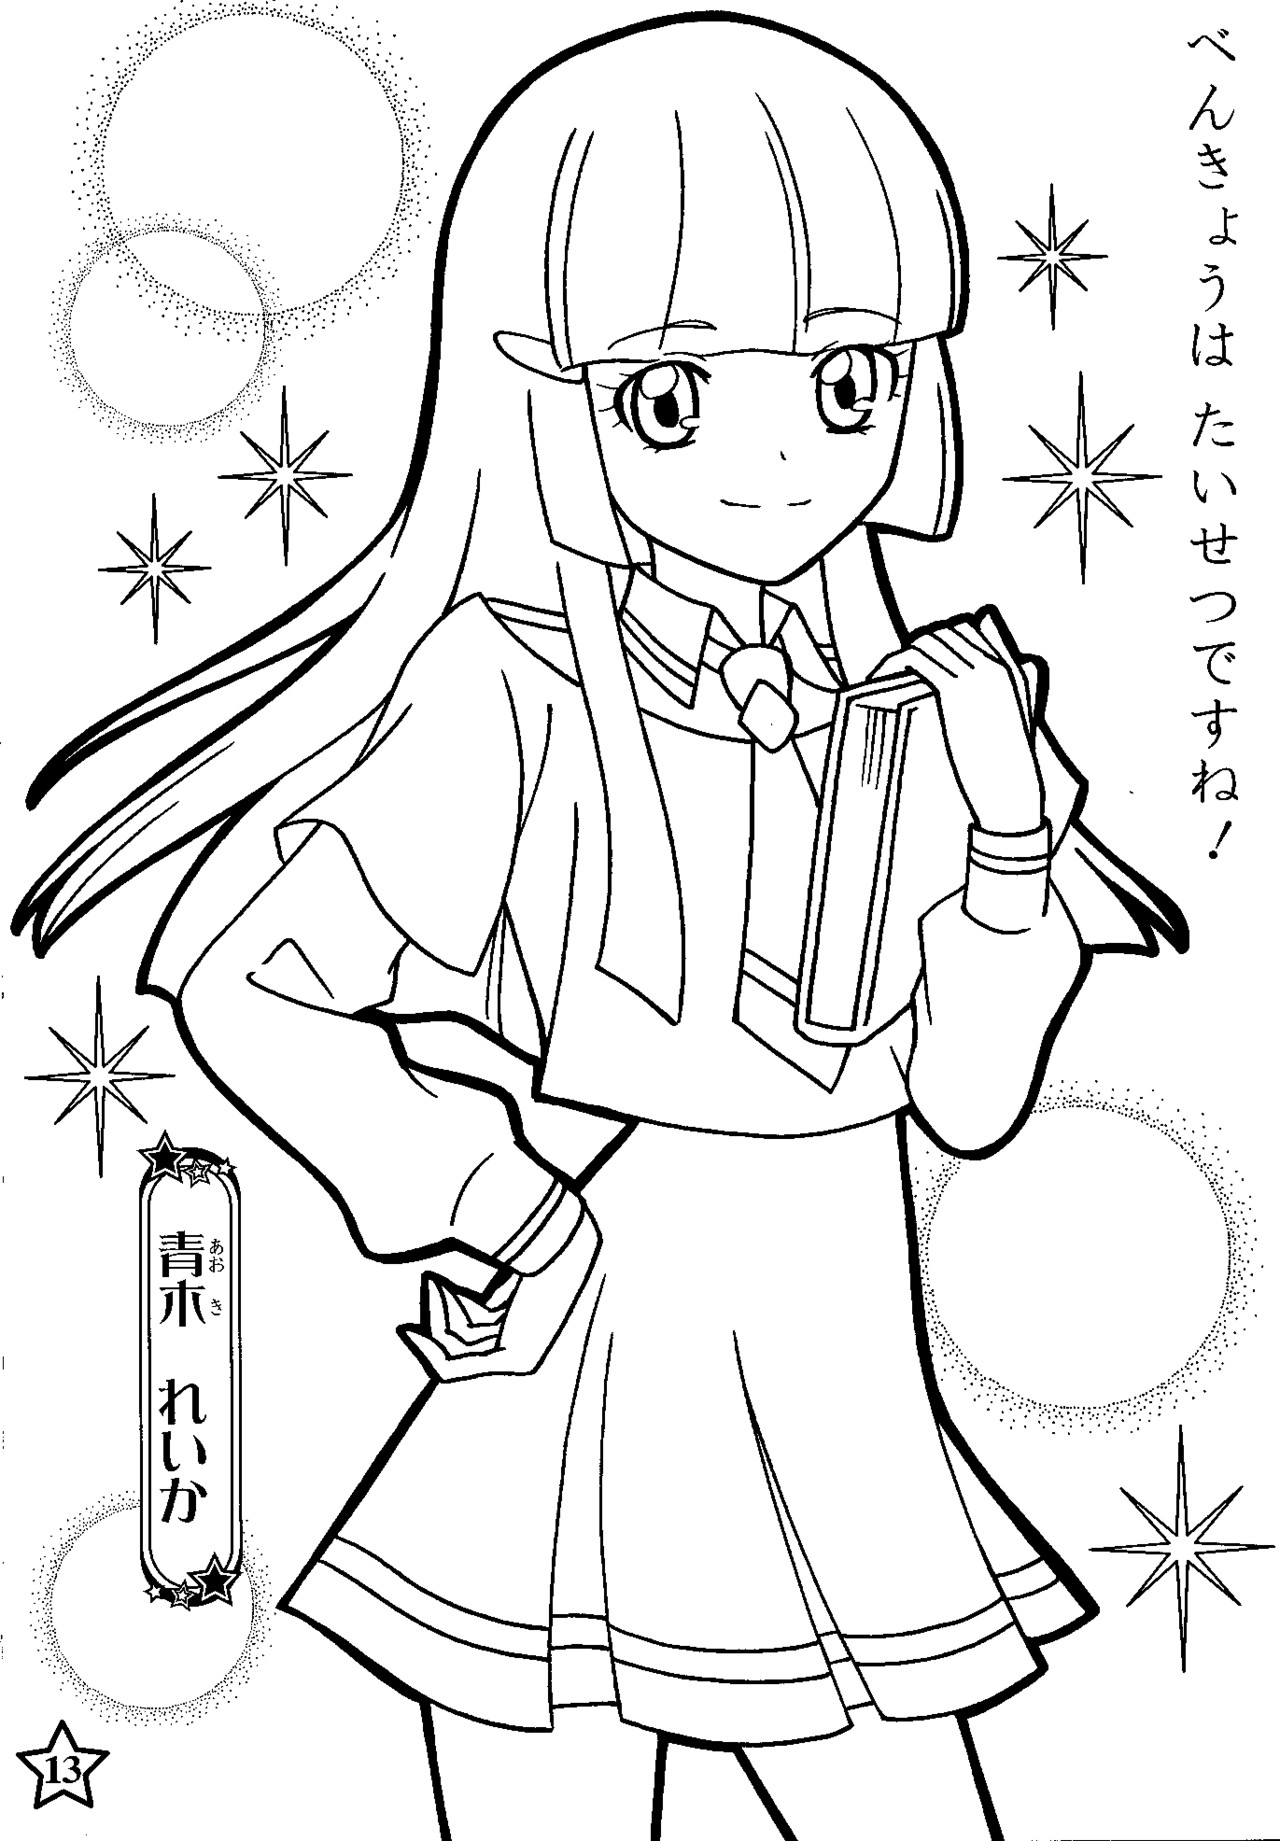 Glitter Force Coloring Pages Glitter Force Coloring Page 131 Smile Precure Arresting Pages New